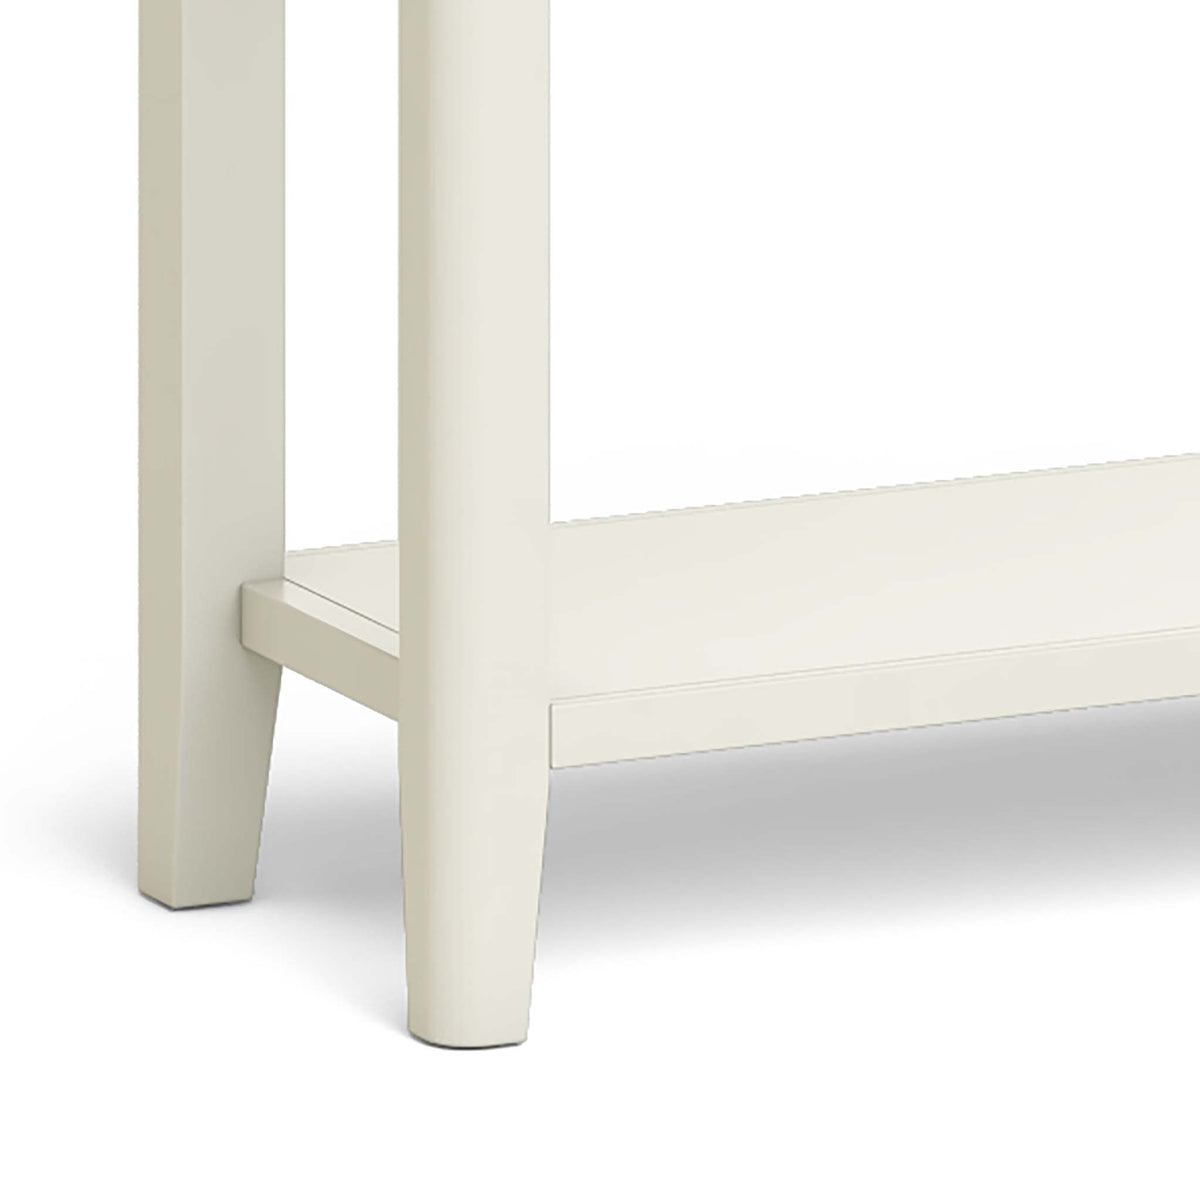 The Windsor Cream Painted Console Table with Storage Drawers - Close Up of Console Legs and Lower Shelf